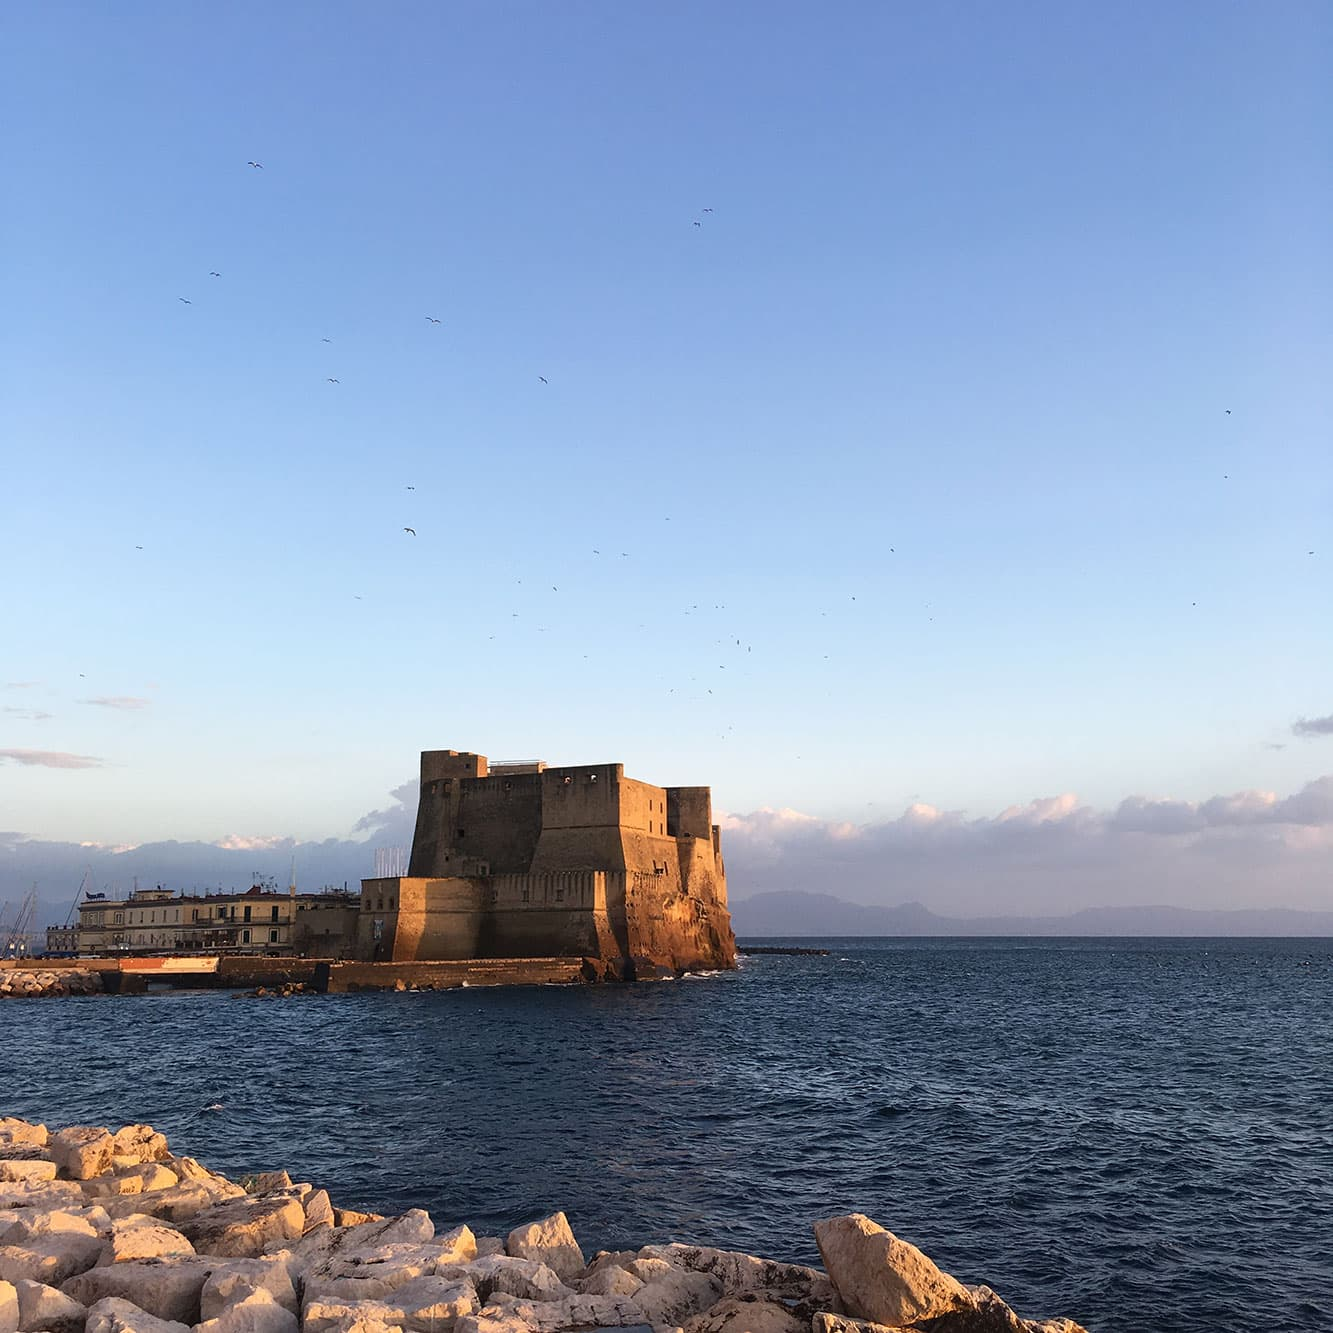 Castel dell'Ovo is free to visit all year round